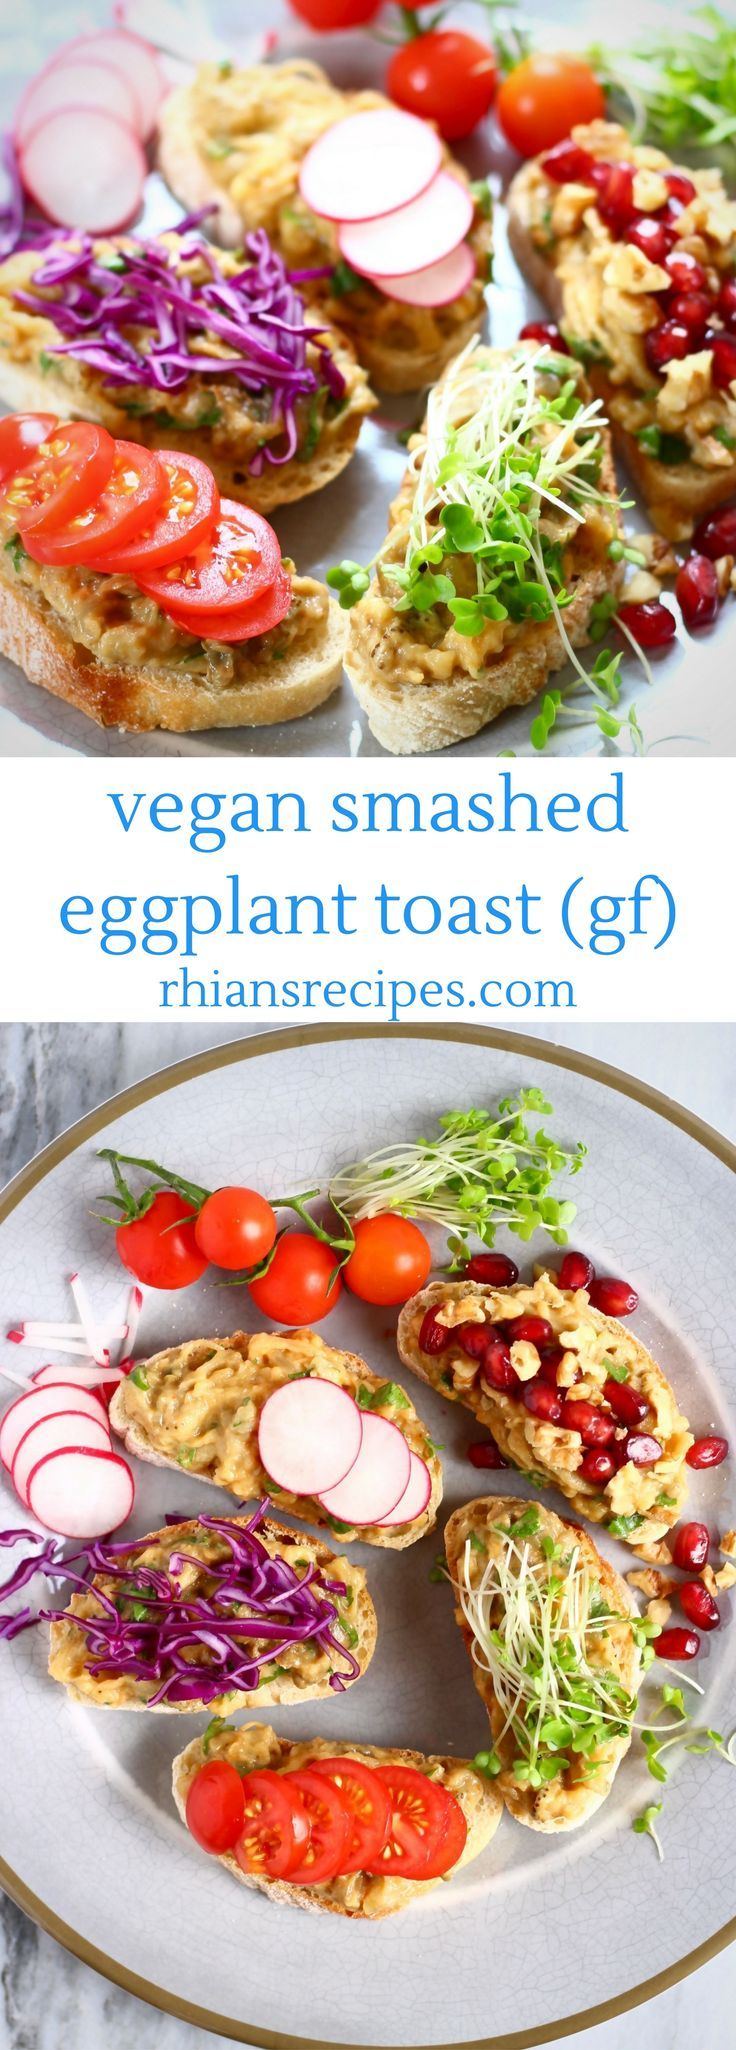 This Vegan Smashed Eggplant (Aubergine) Toast is a great alternative avocado toast! Perfect for breakfast or brunch. Gluten-free.